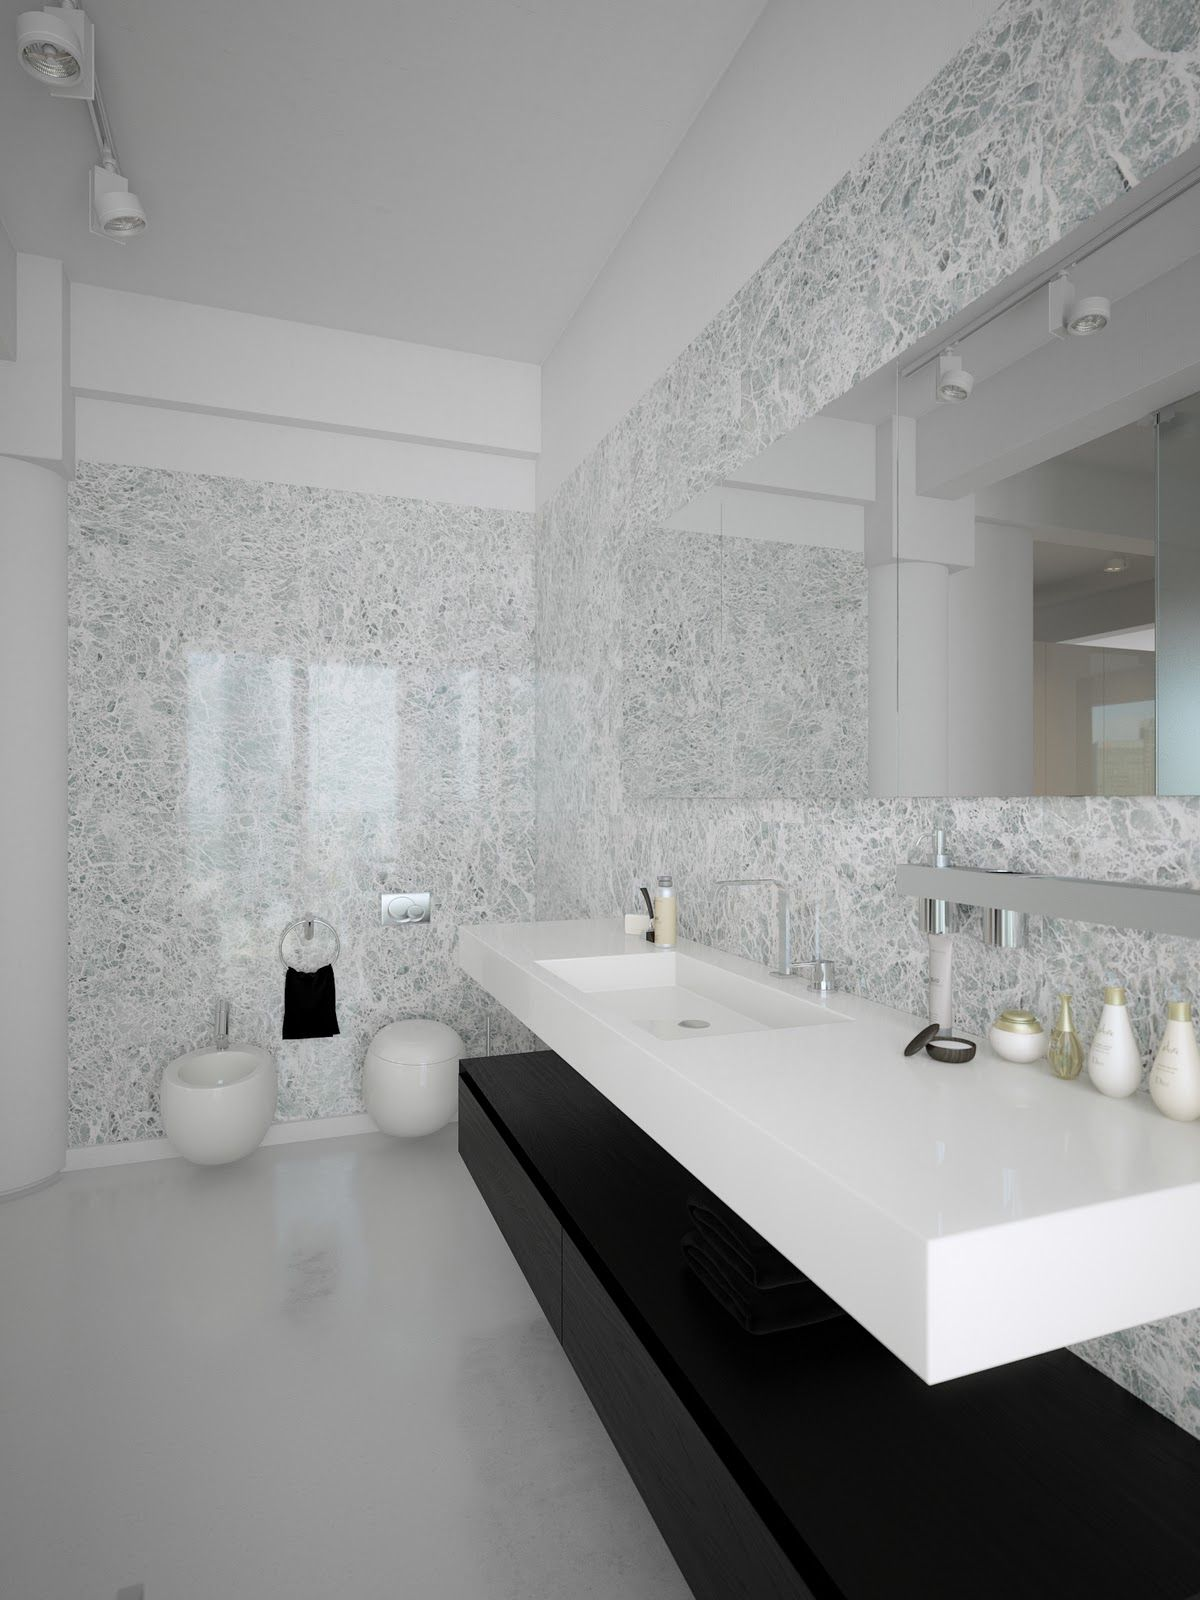 Coolest Minimalist Modern Bathroom Design Contemporary Bathroom Designs Contemporary